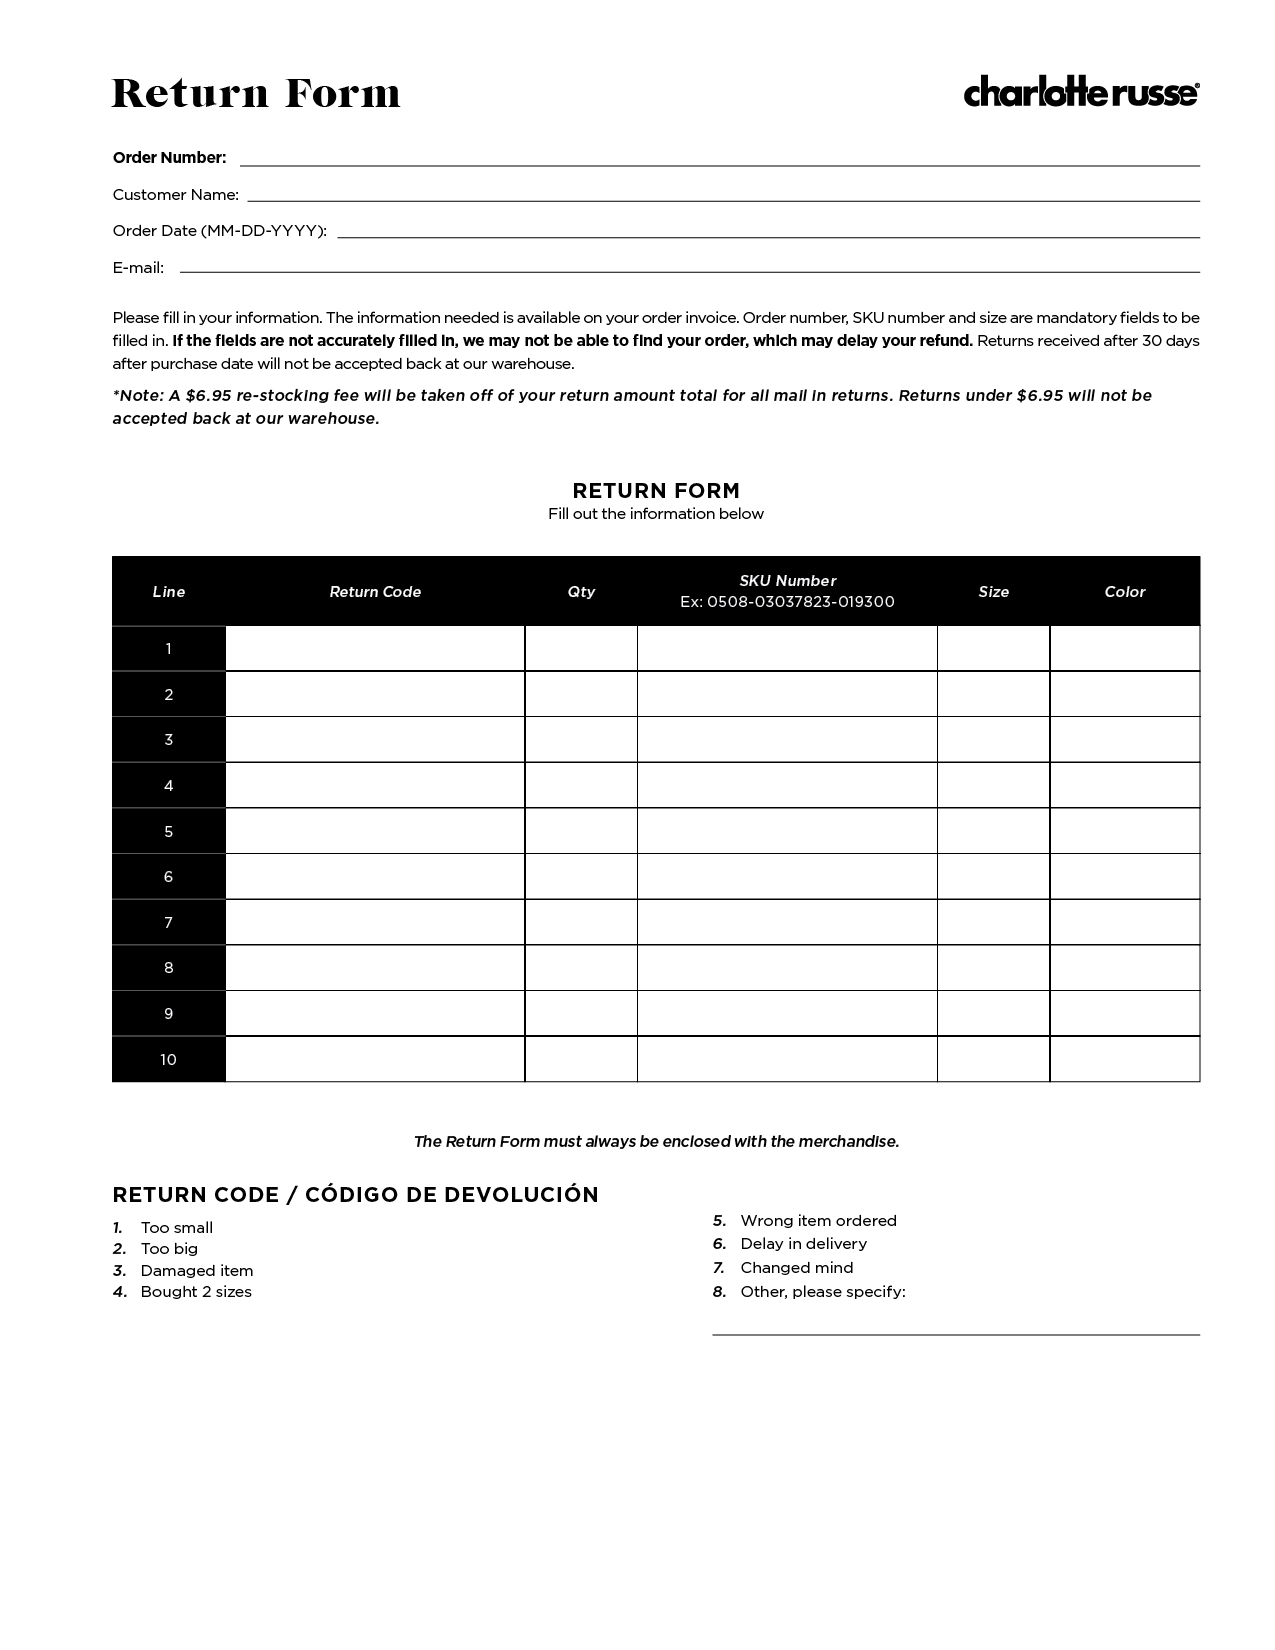 Charlotte Russe - Return Form